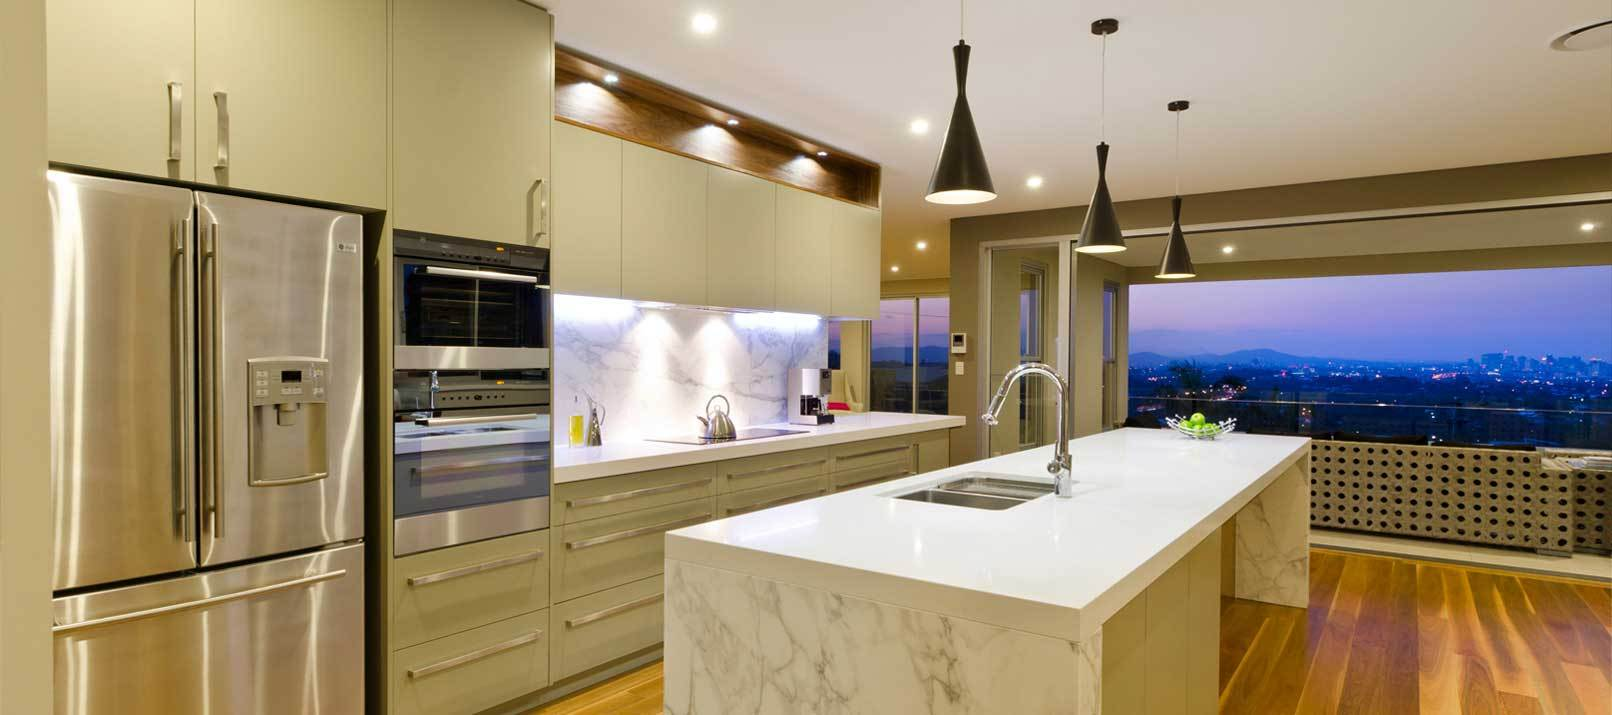 How to effectively plan your new kitchen designer kitchens - Kitchen design expo ...